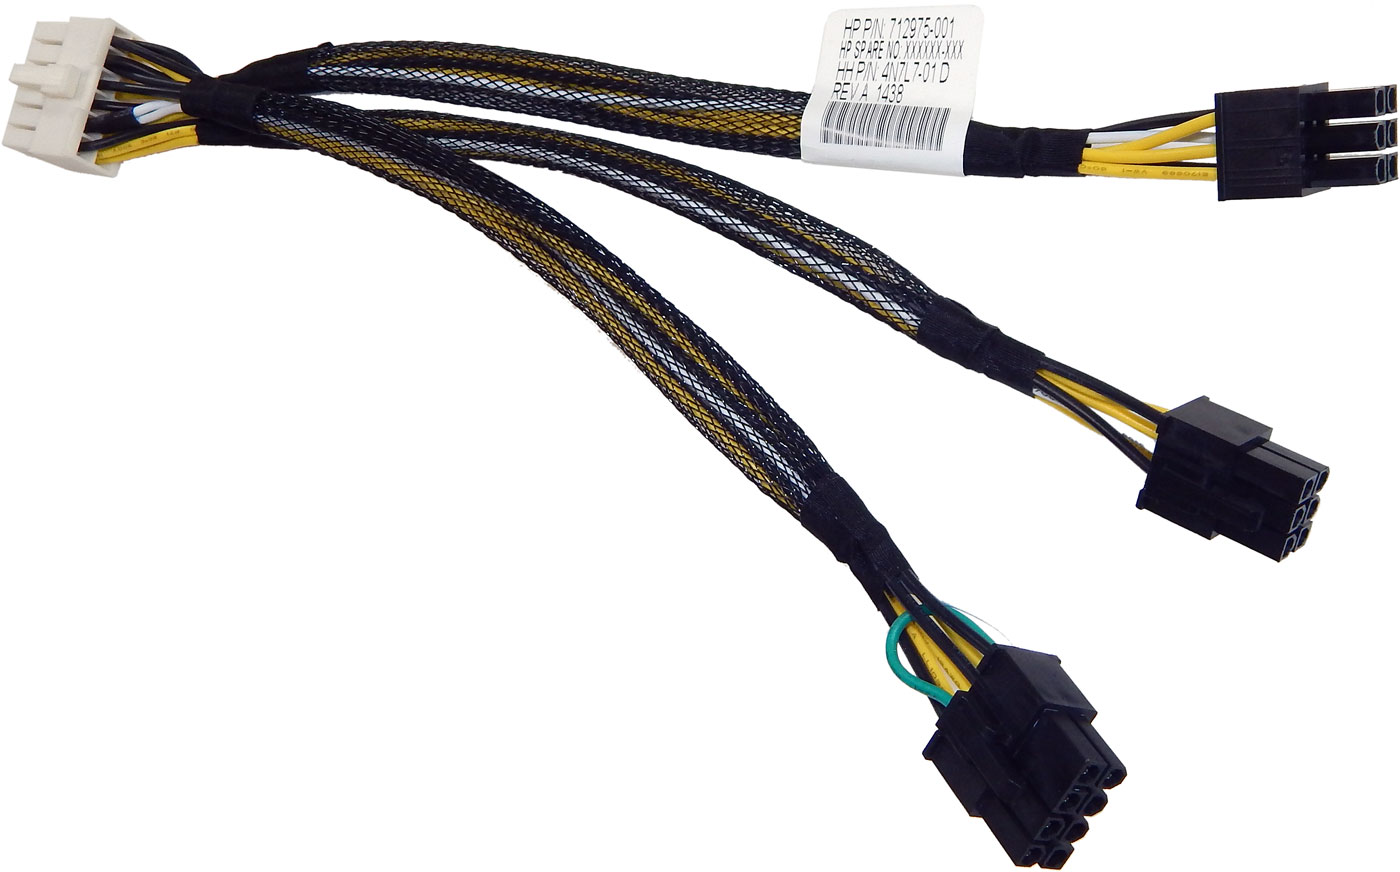 HP WS460c Gen8 Graphic Expan Power Cable New 712975-001